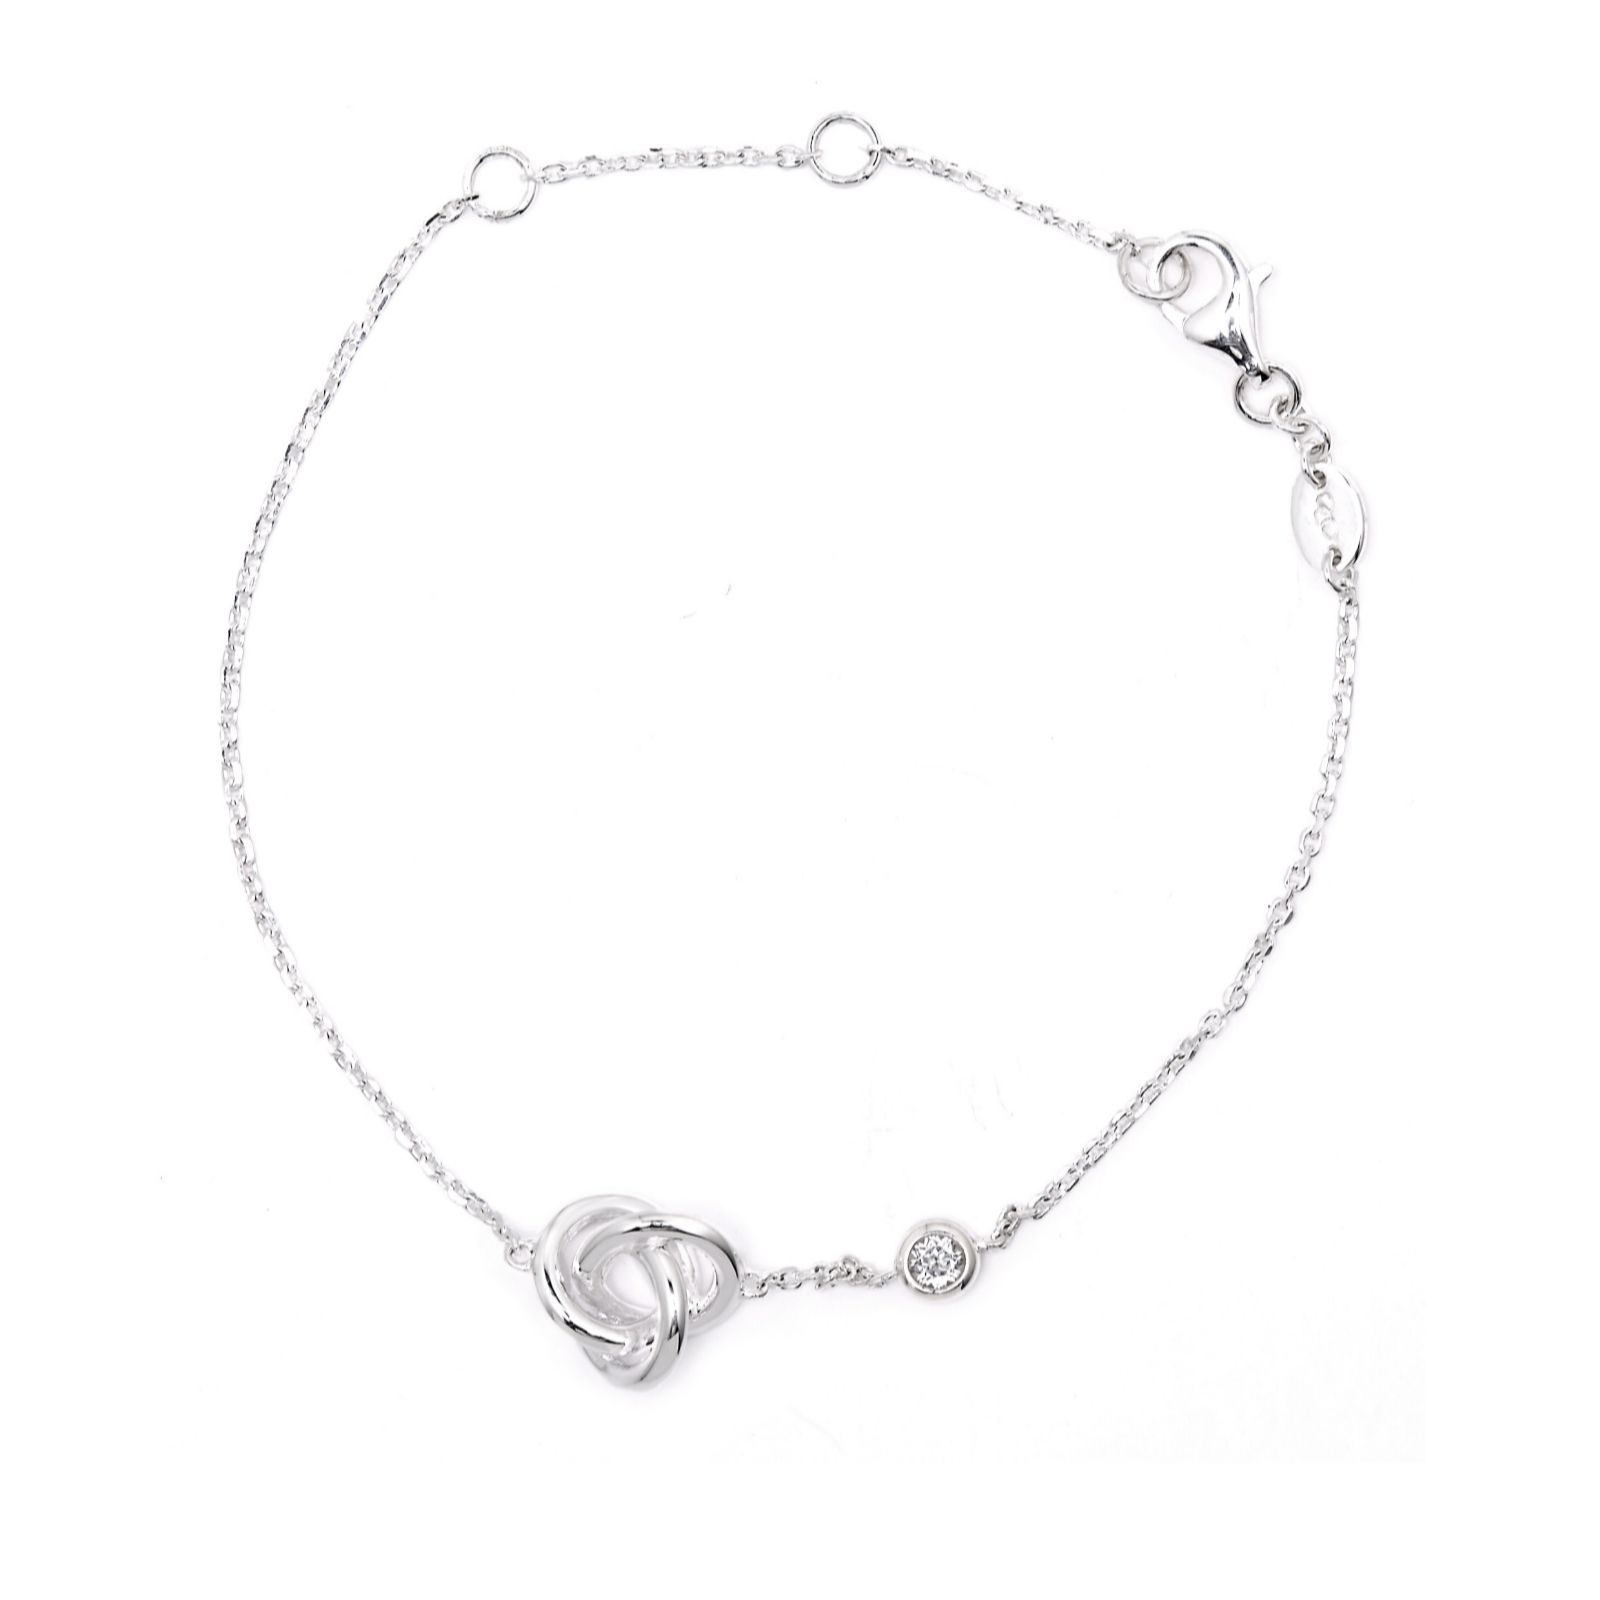 LINKS OF LONDON Sterling Silver & Topaz Love Knot Necklace